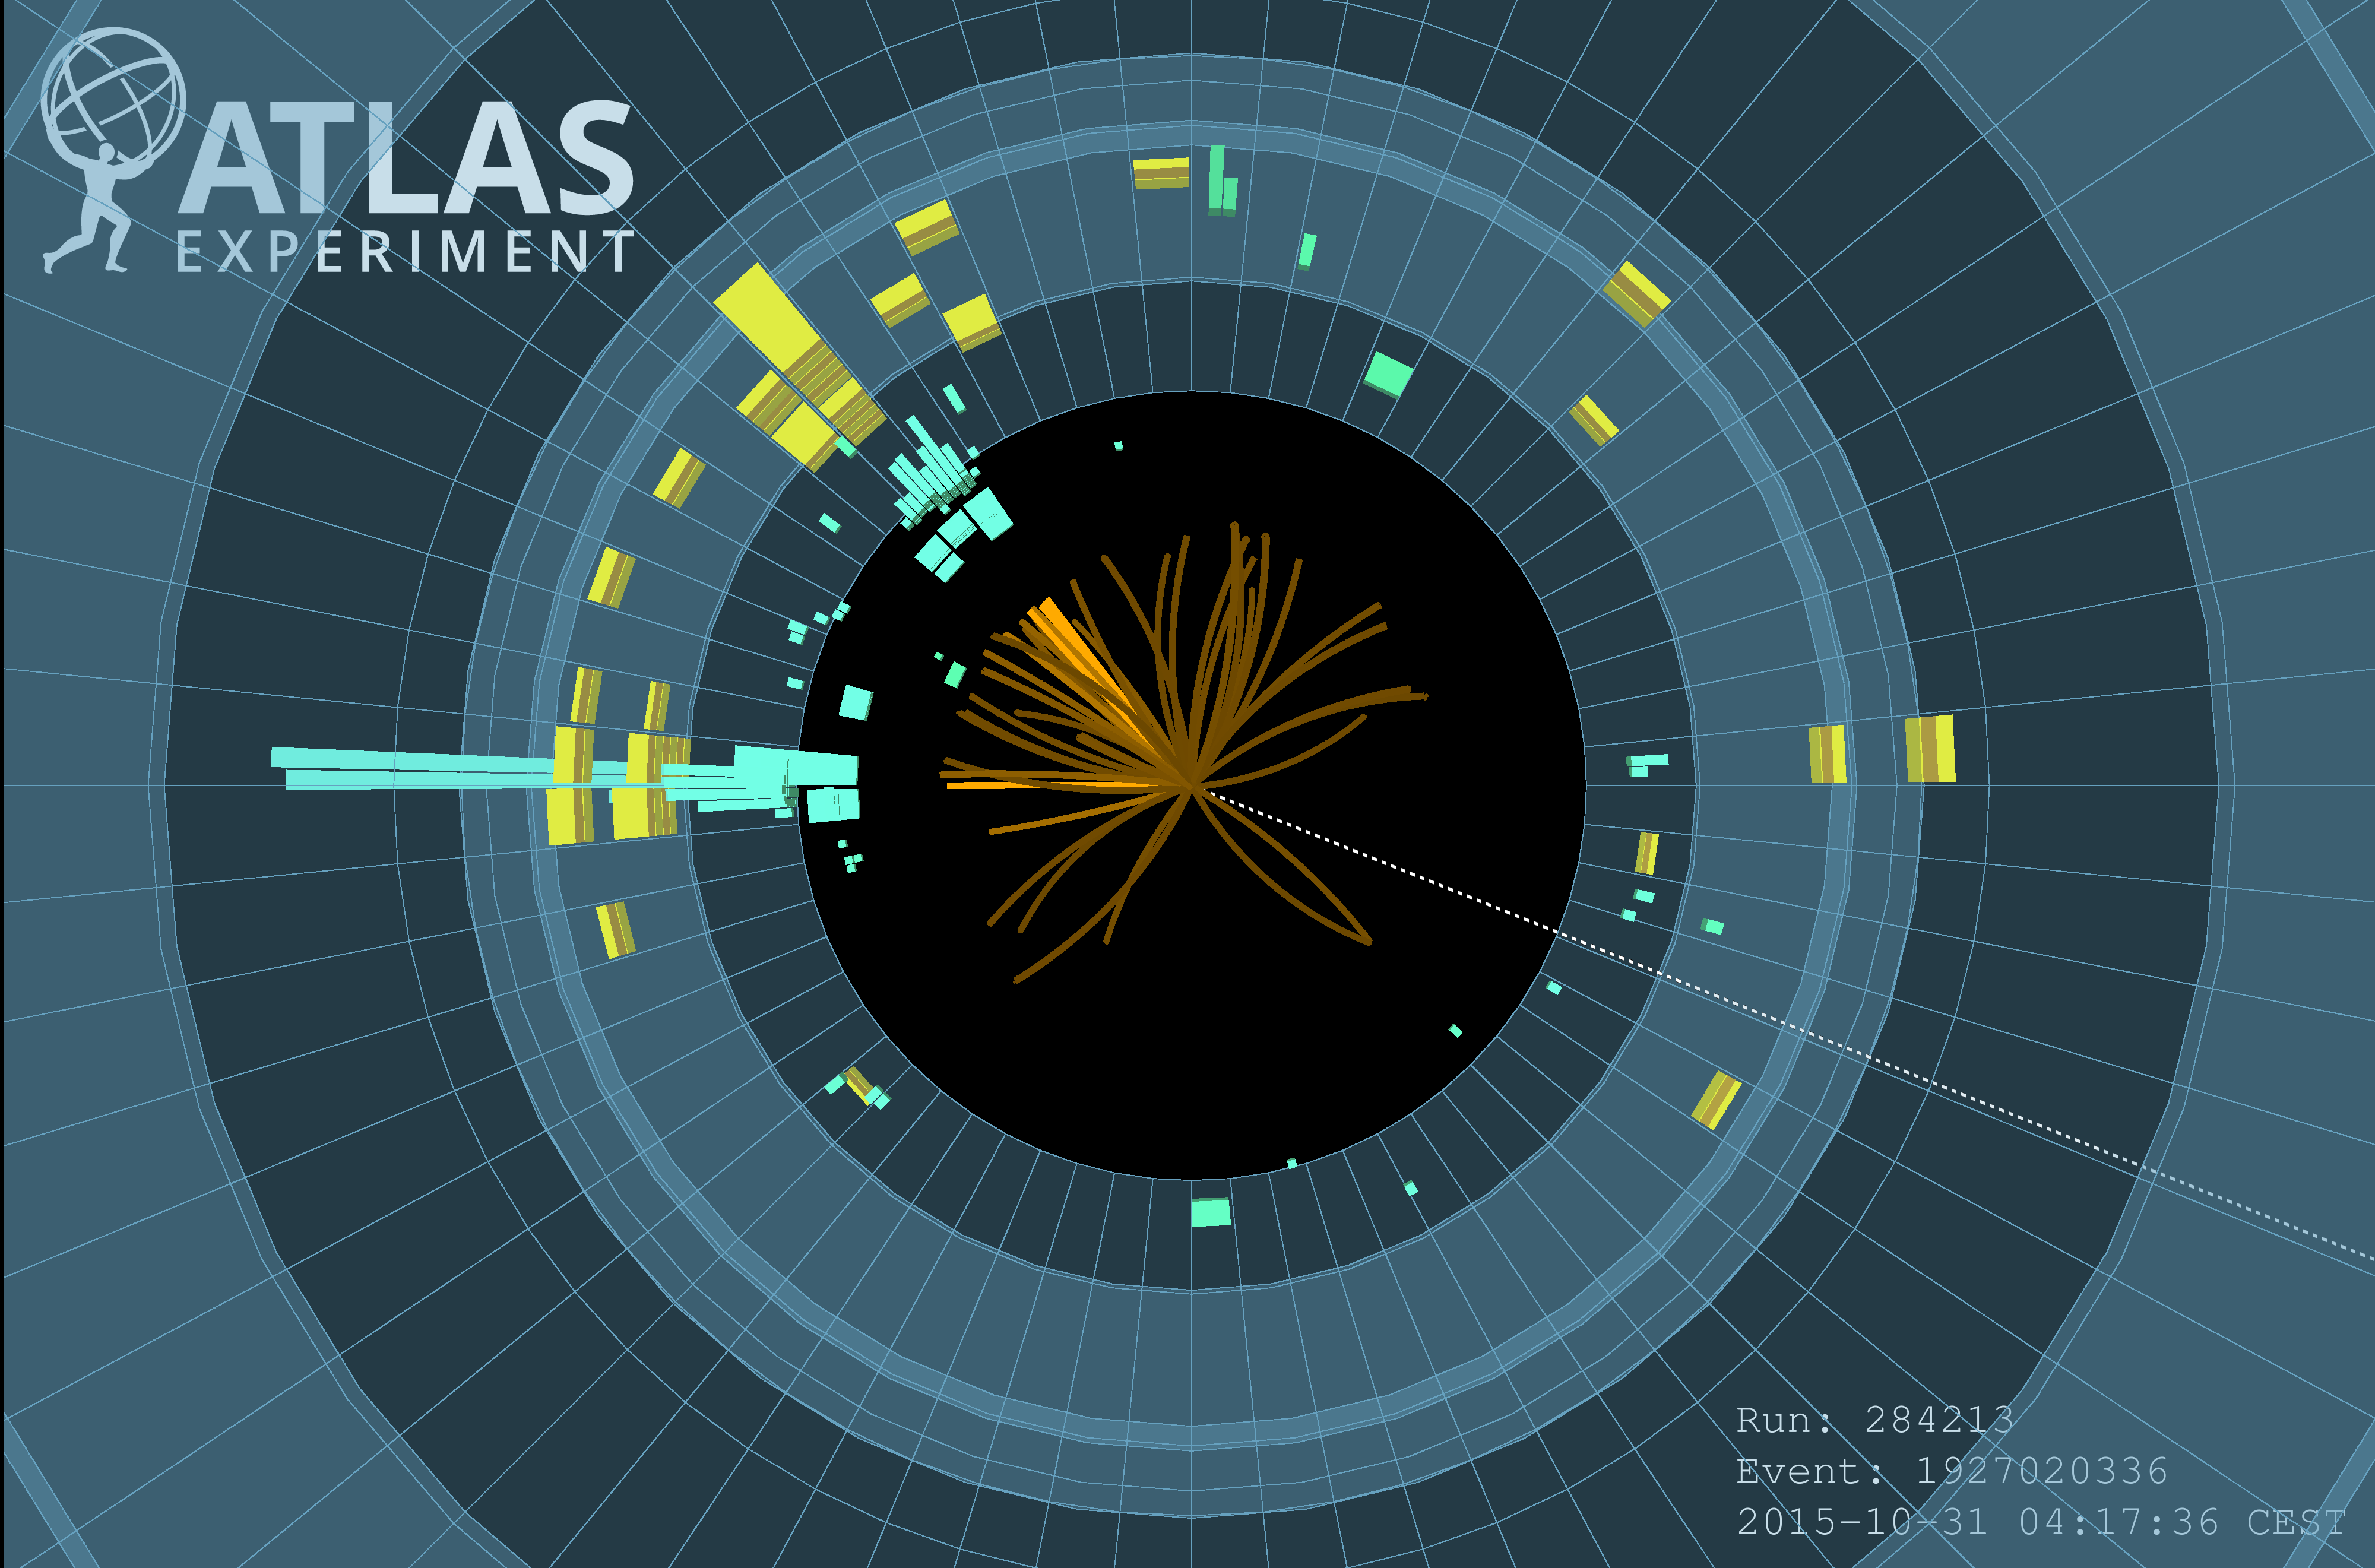 Event display for the H→bb decay analysis with the ATLAS detector. Credit: ATLAS Collaboration/CERN